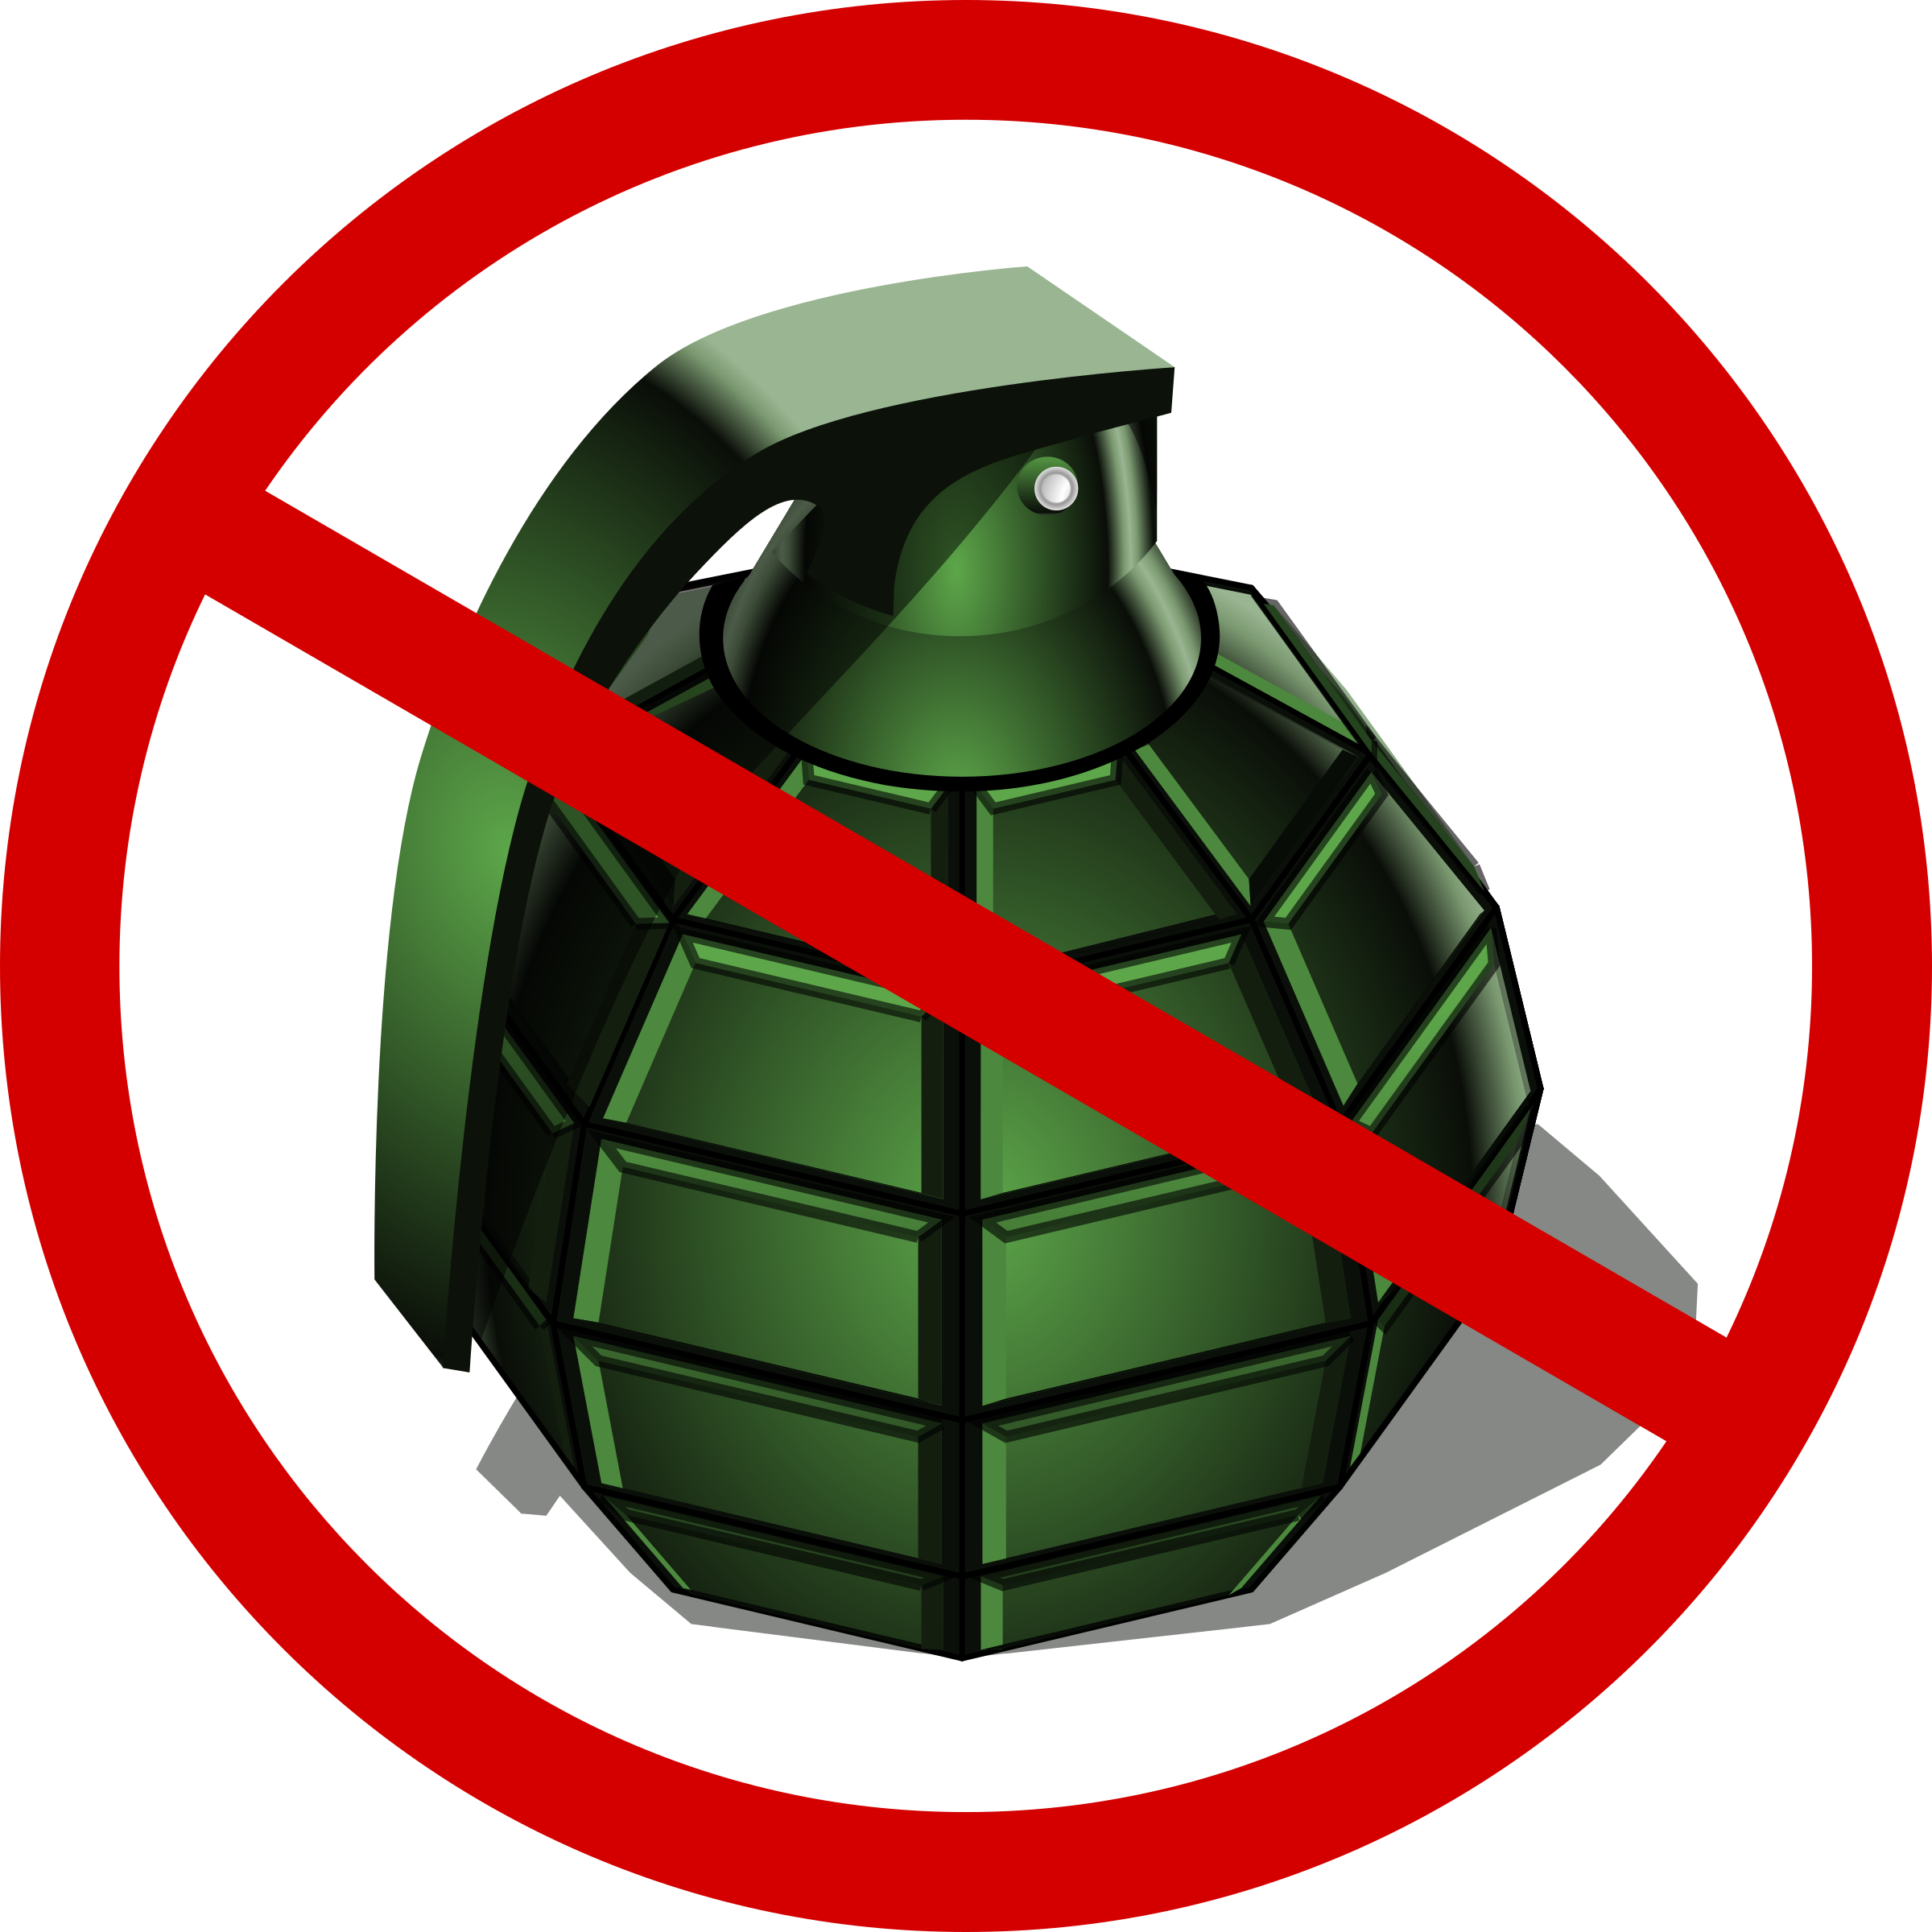 no grenades by Keistutis